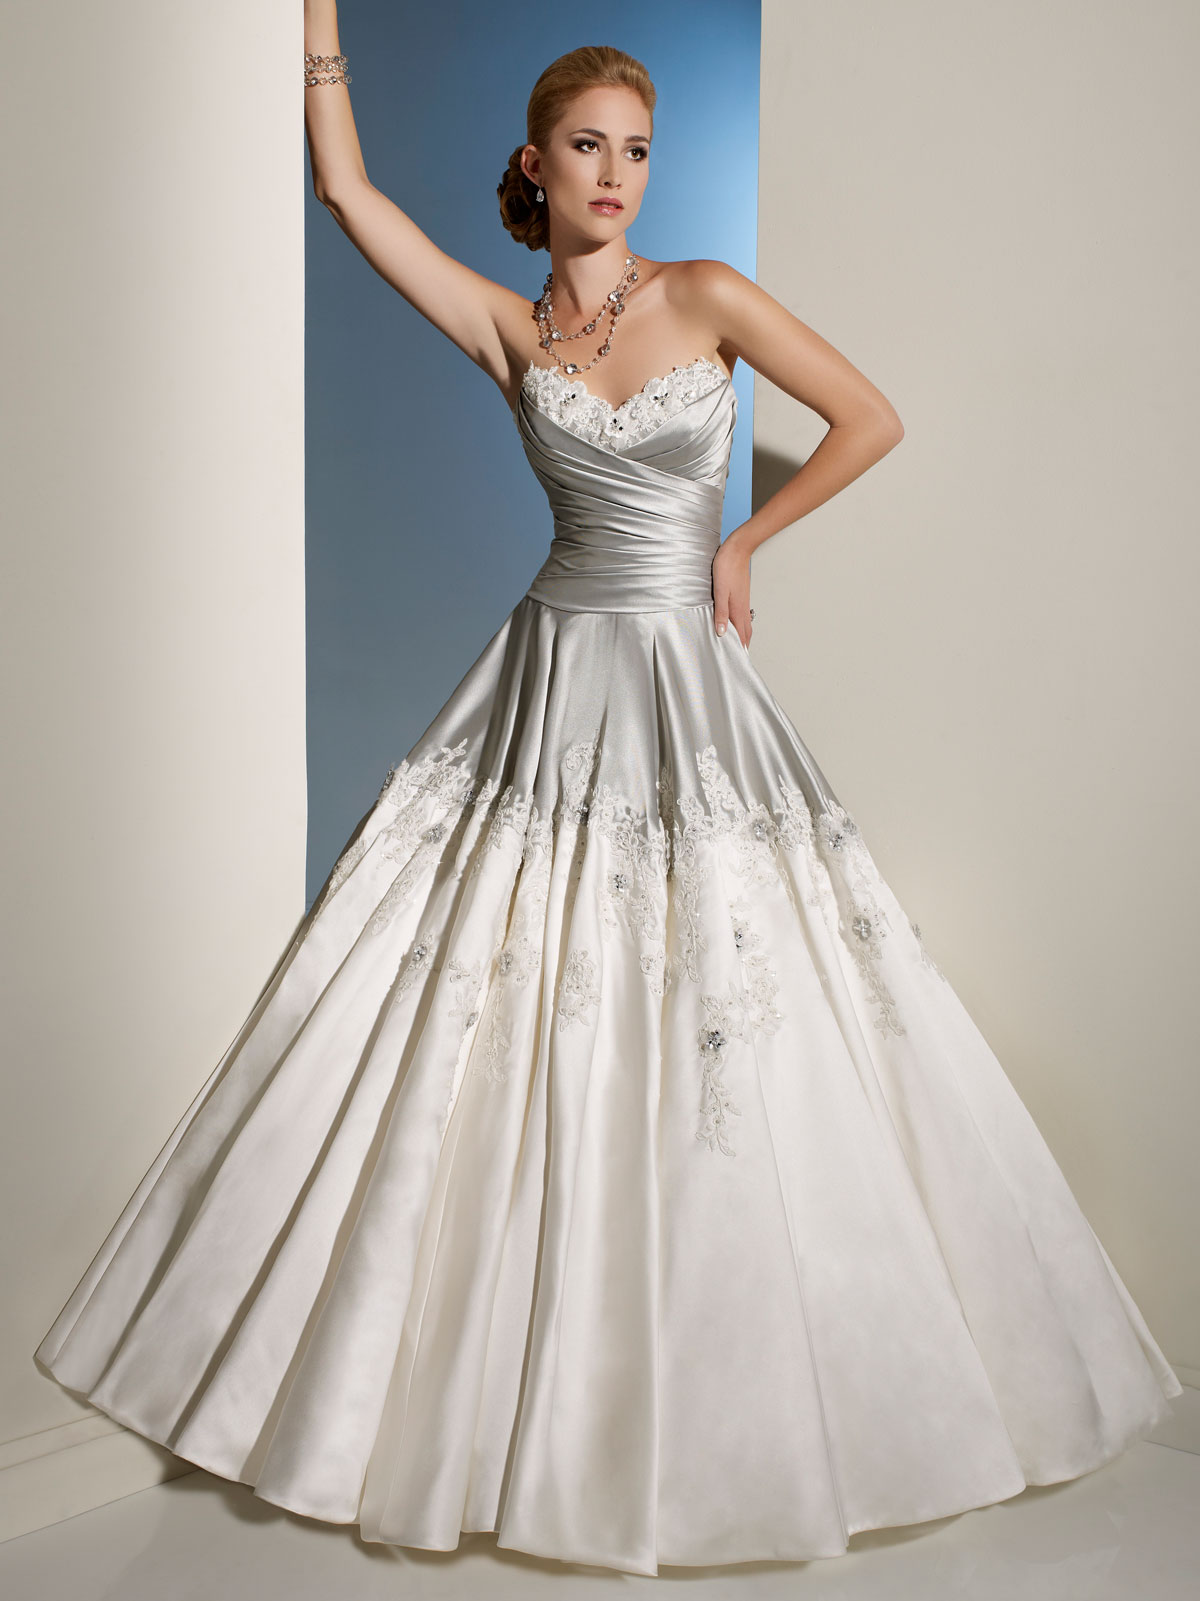 Wedding dresses: silver and white wedding dress